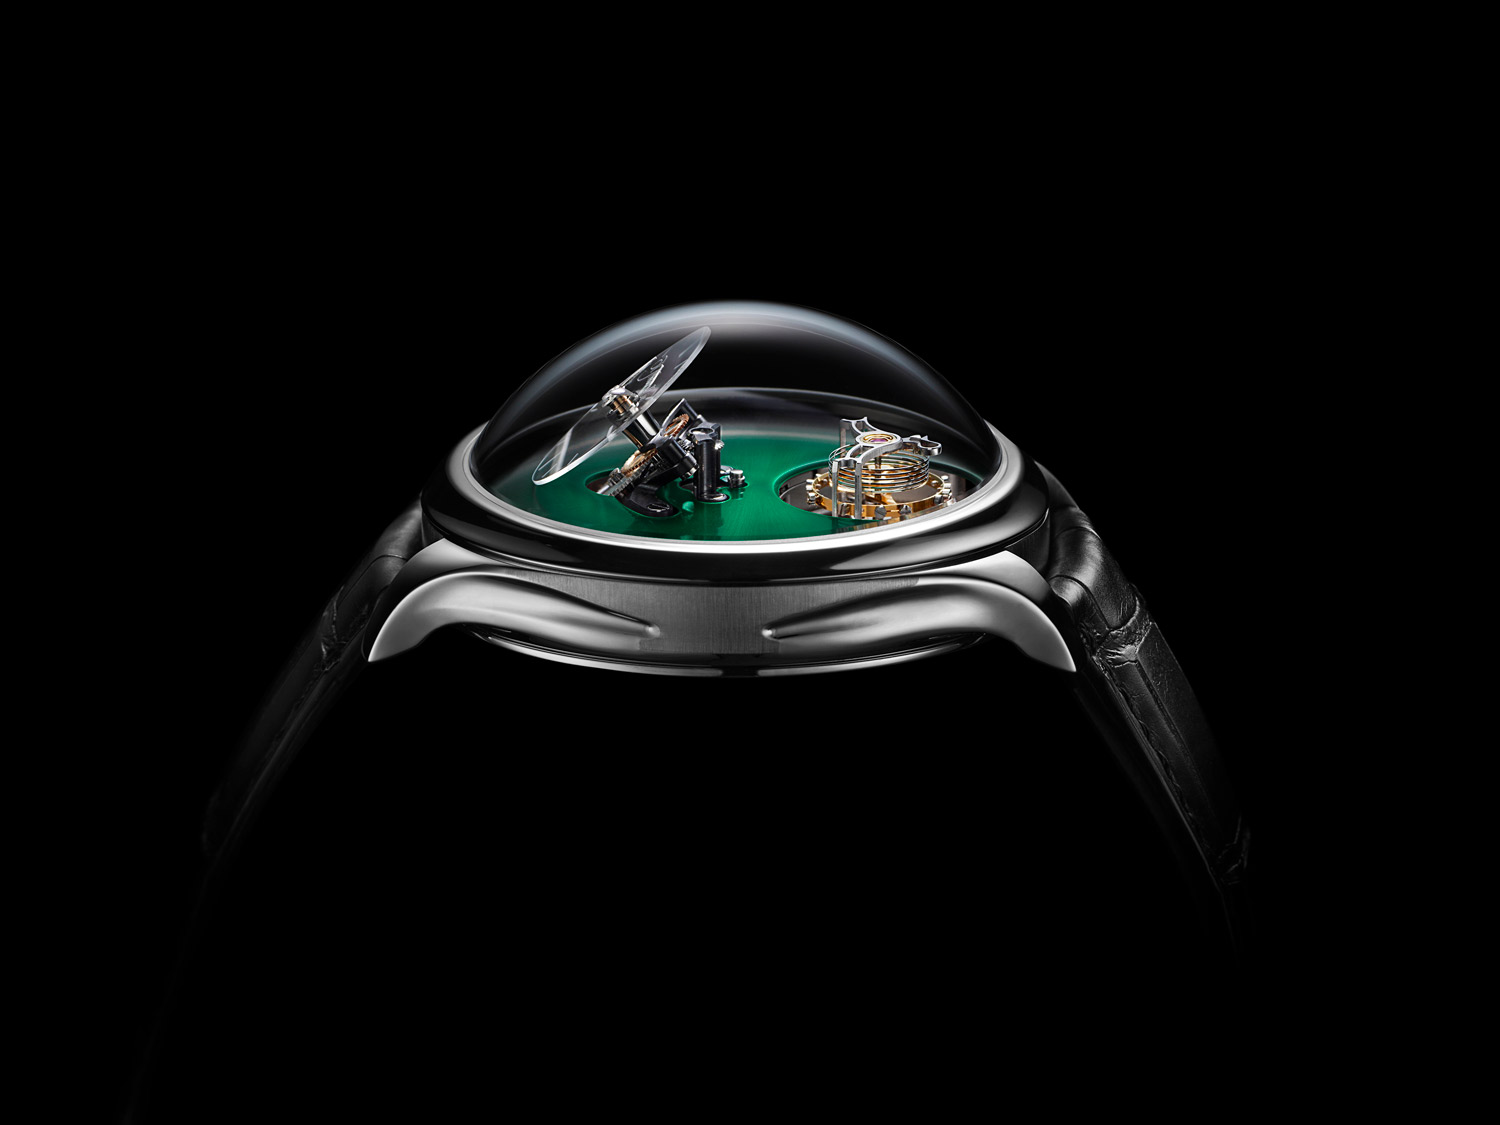 Endeavour_Cylindrical_Tourbillon_HMoserxMBandF_Profile_Cosmic-Green_Lres